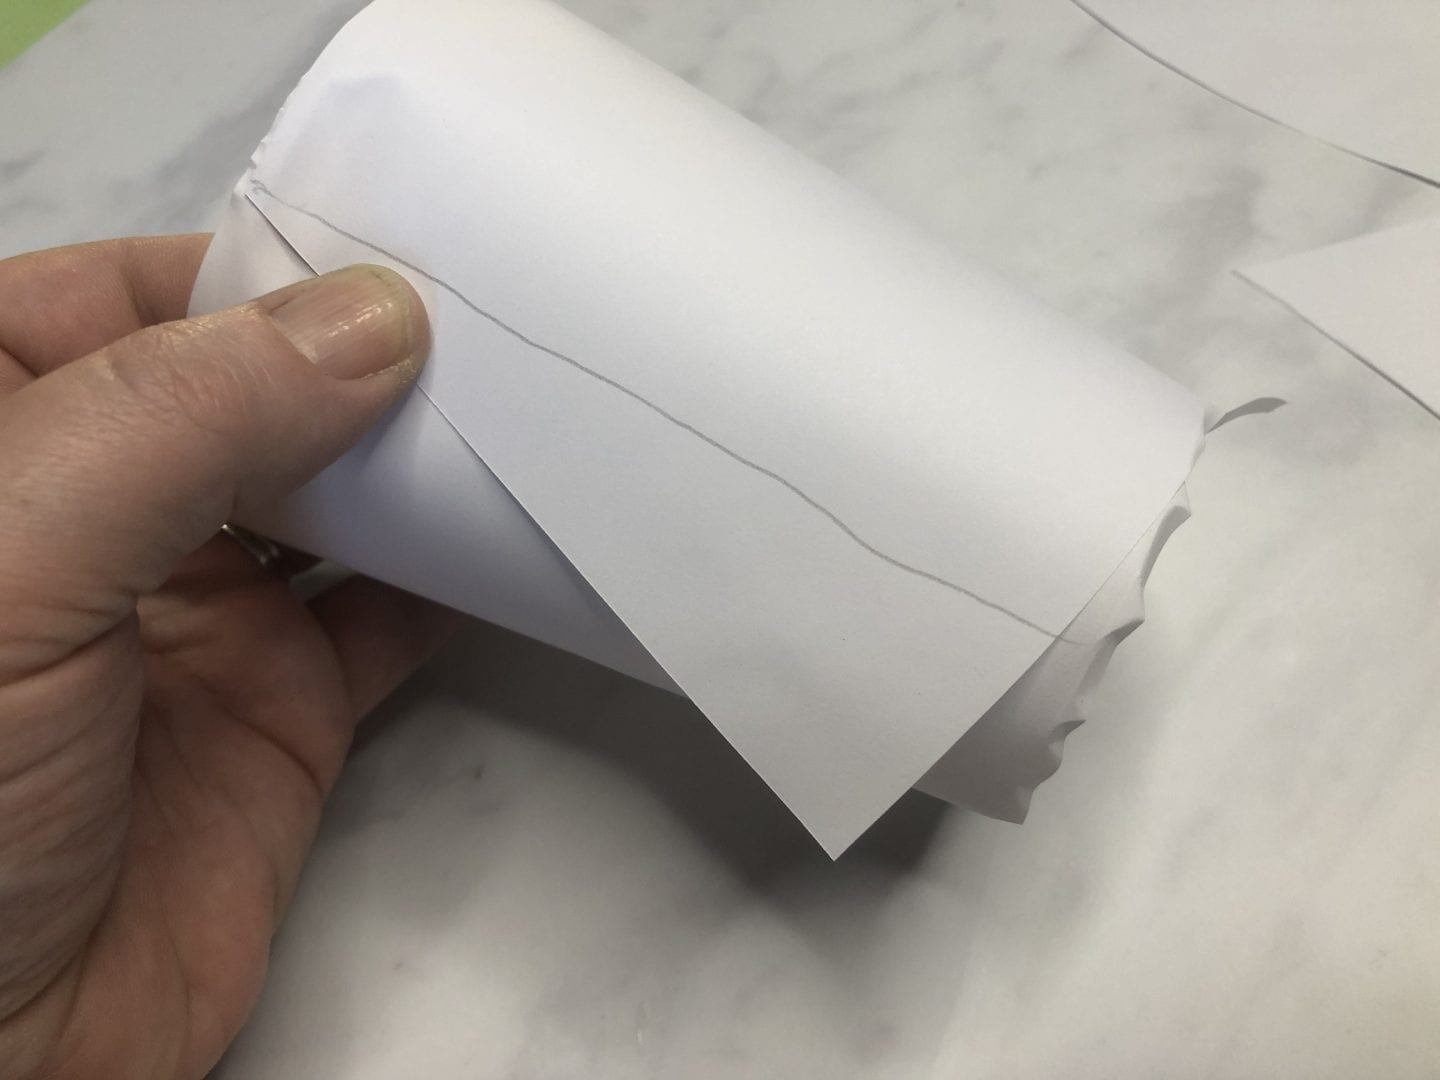 drawing a line down the edge of the template to complete it